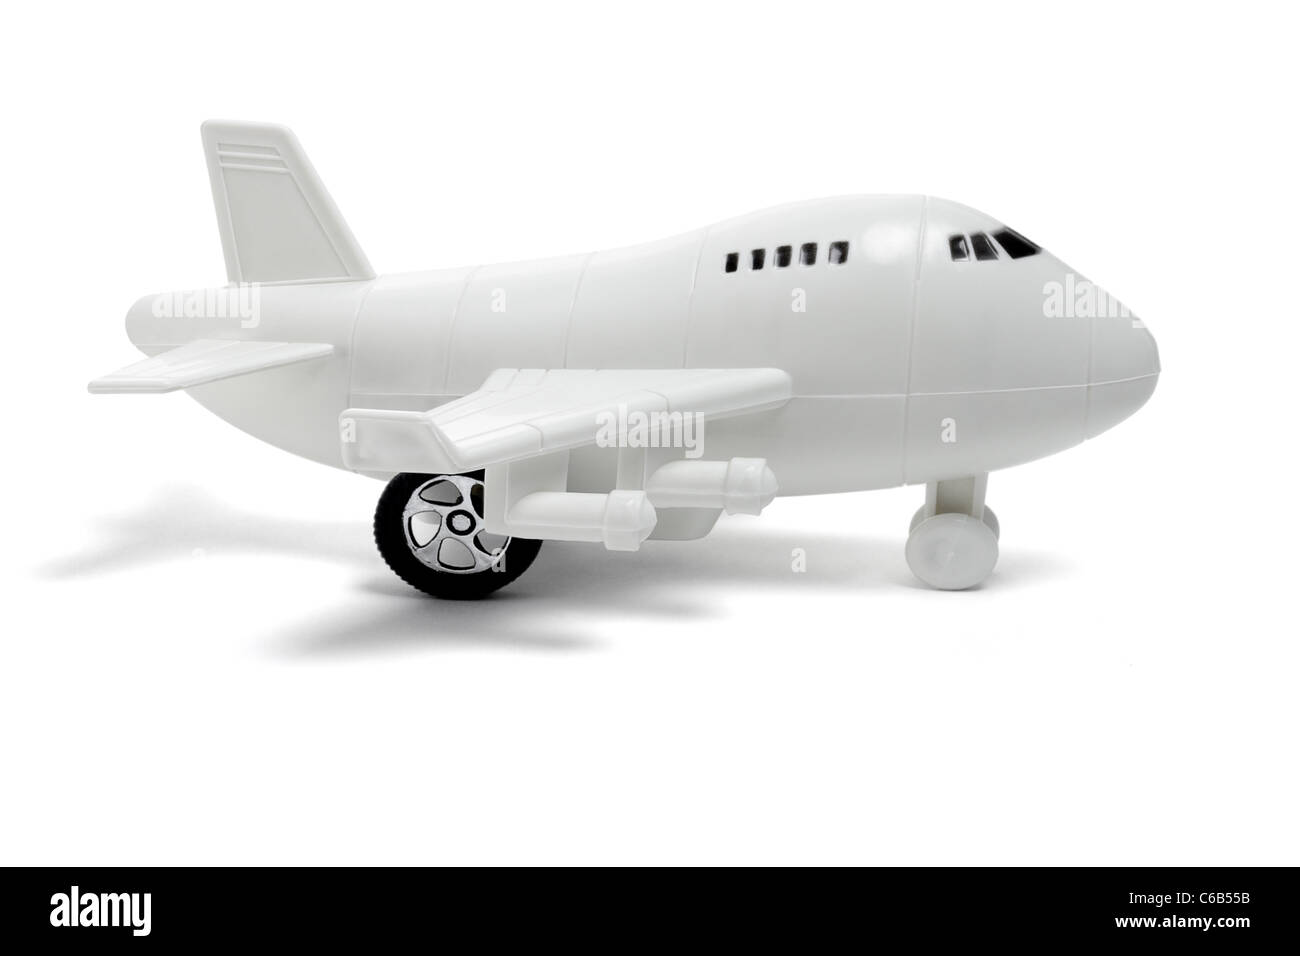 Plastic toy passenger jet plane on white background - Stock Image